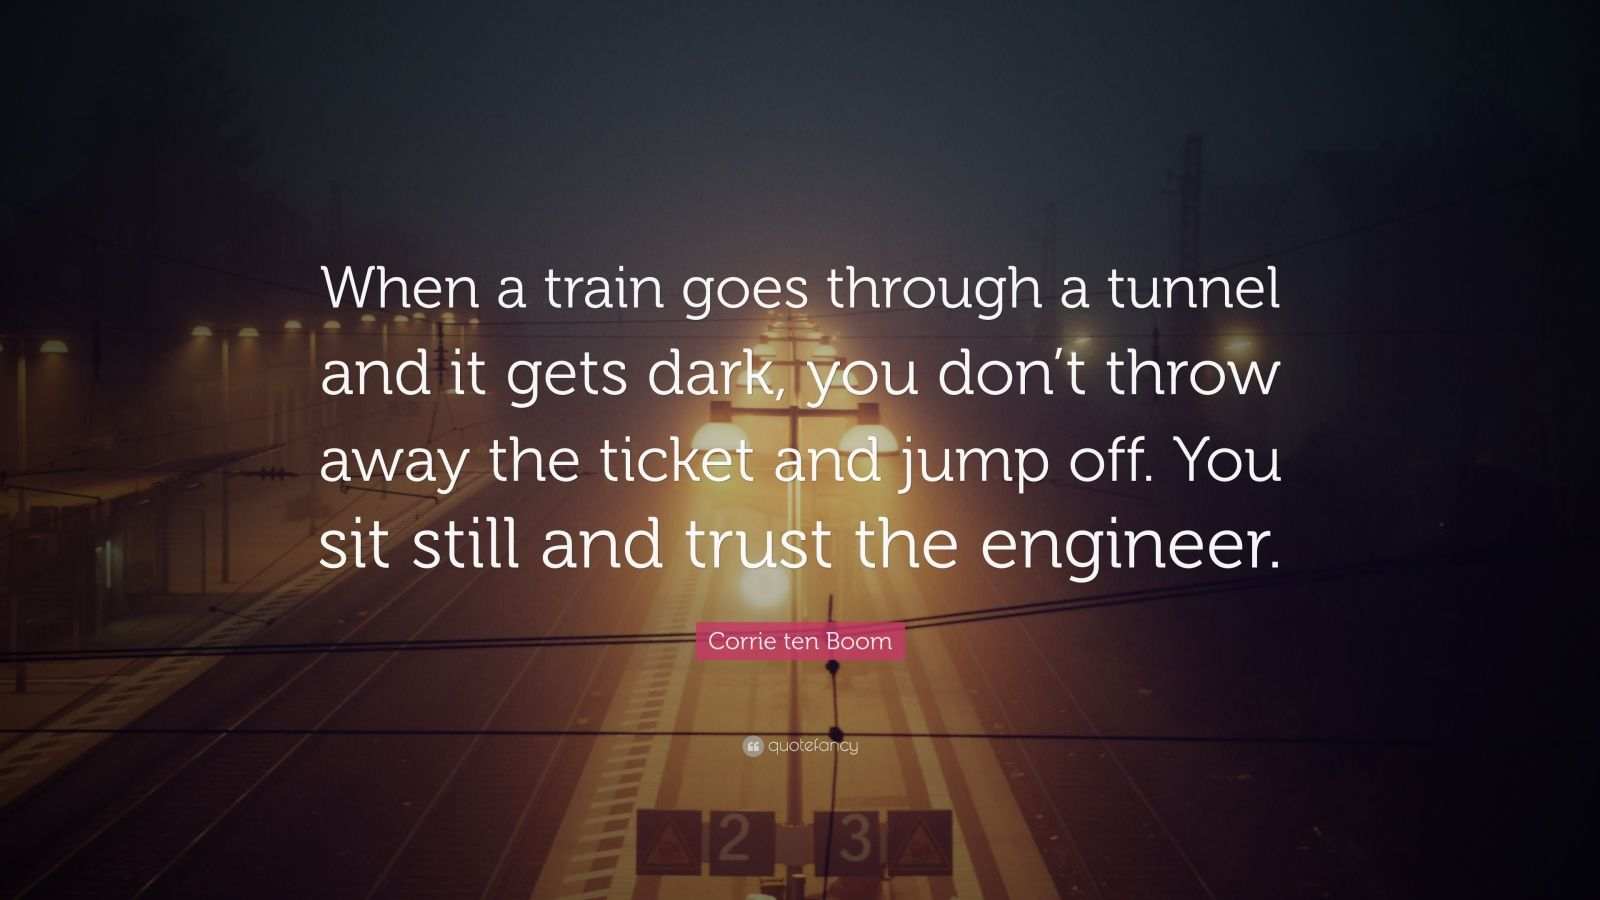 "Corrie ten Boom Quote: ""When a train goes through a tunnel and it gets dark, you don't throw away the ticket and jump off. You sit still and trust the engineer."""